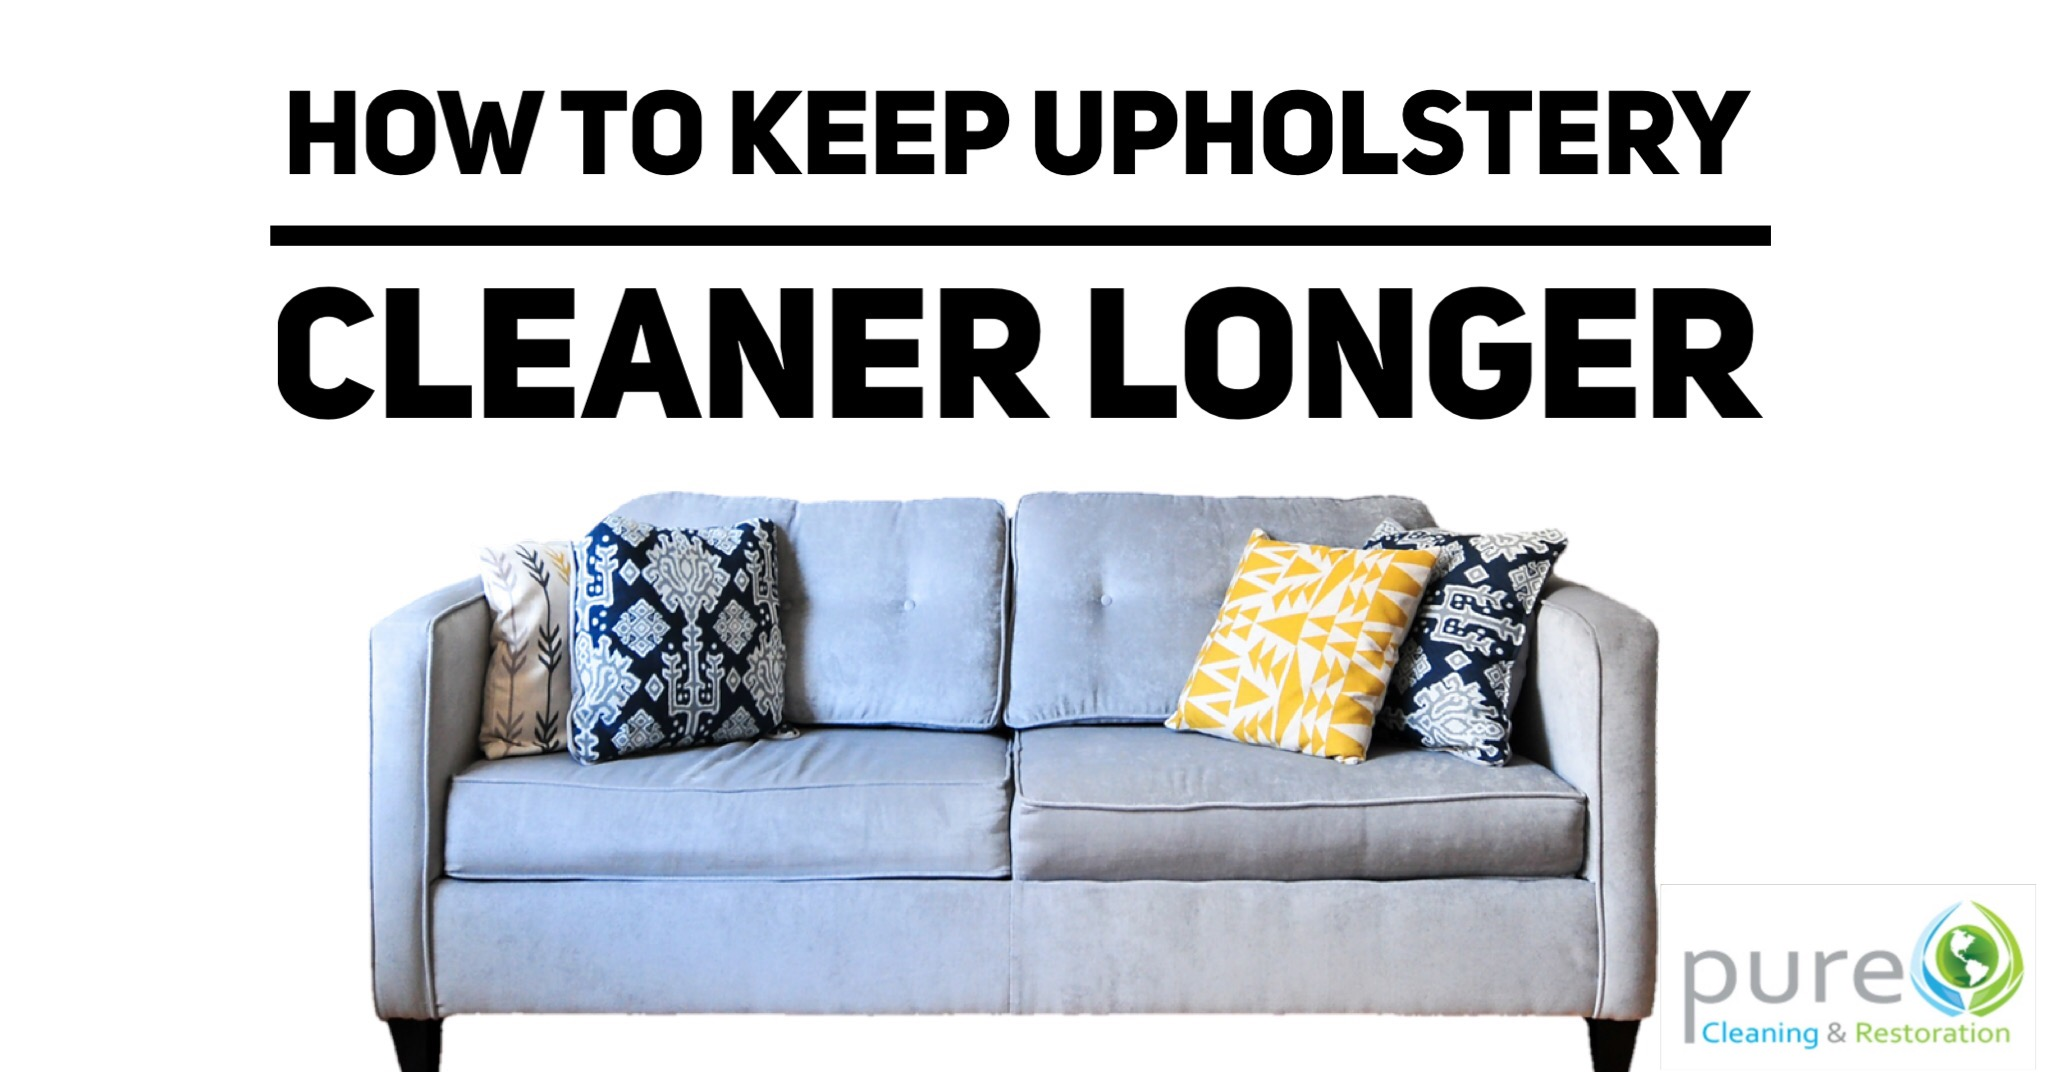 carpet cleaner, upholstery, cleaning, rugs, Utah cleaner